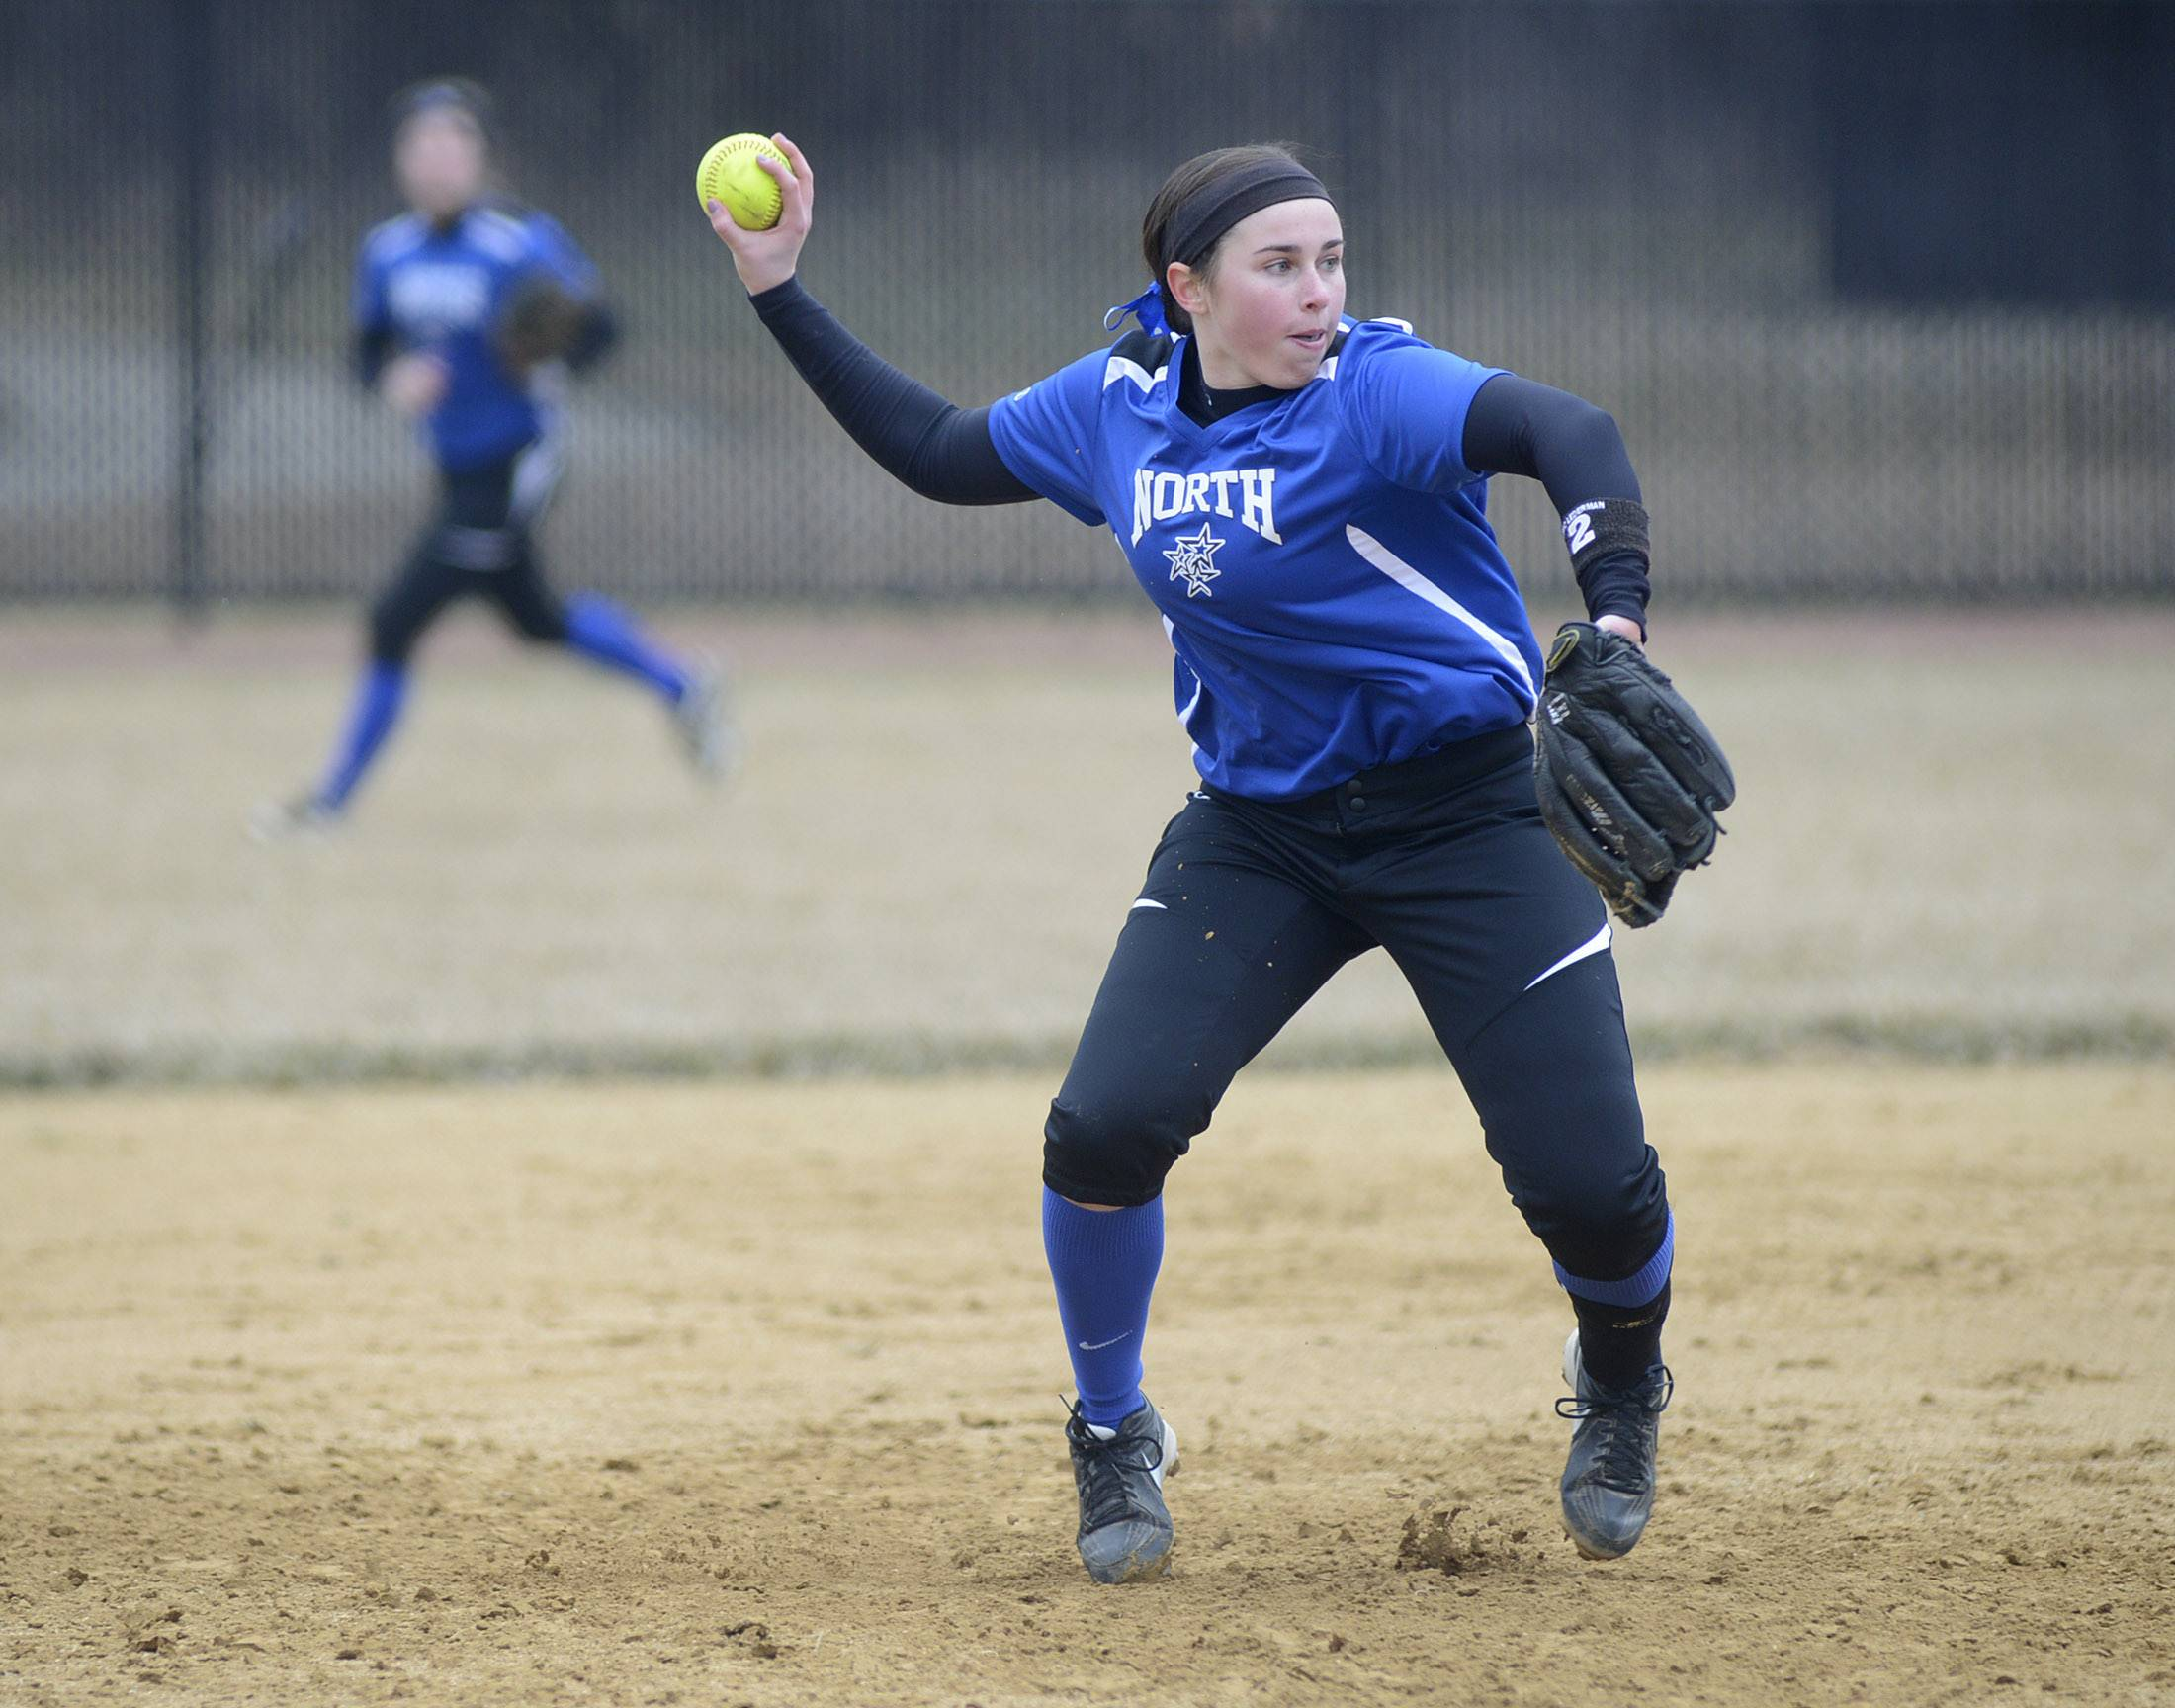 Laura Stoecker/lstoecker@dailyherald.comSt. Charles North's Erin Nemetz throws to first base in the fourth inning of the game vs. Schaumburg on Wednesday, April 2.